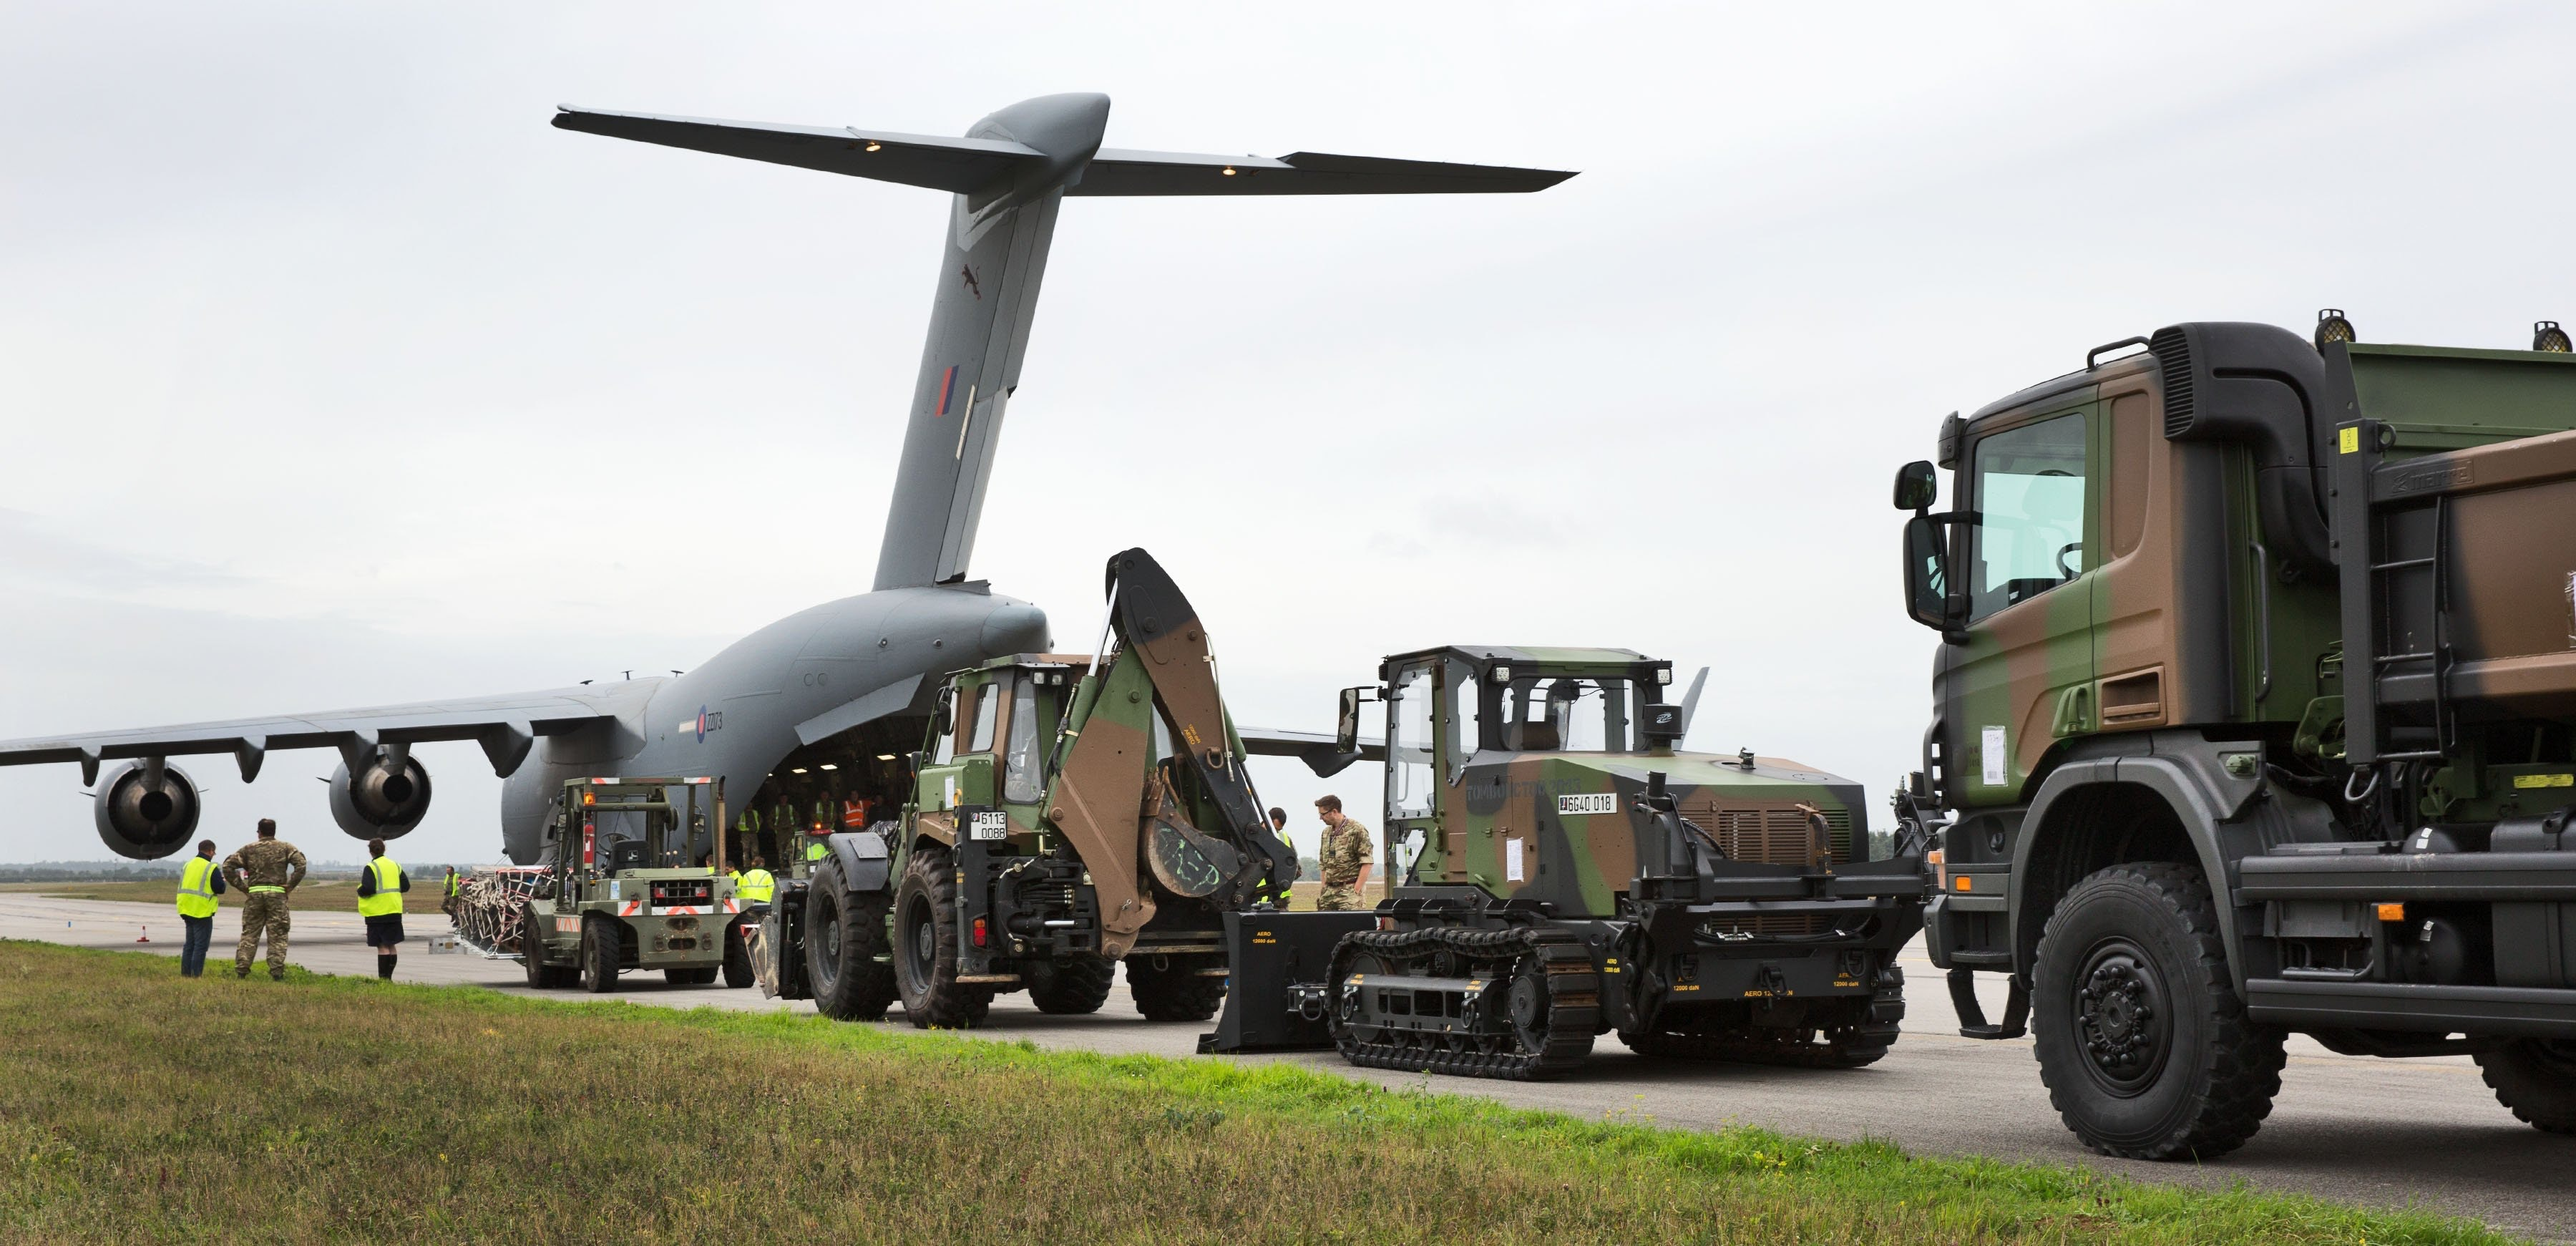 raf c 17 arrives in france to help transport equipment to french territory guadeloupe. Black Bedroom Furniture Sets. Home Design Ideas